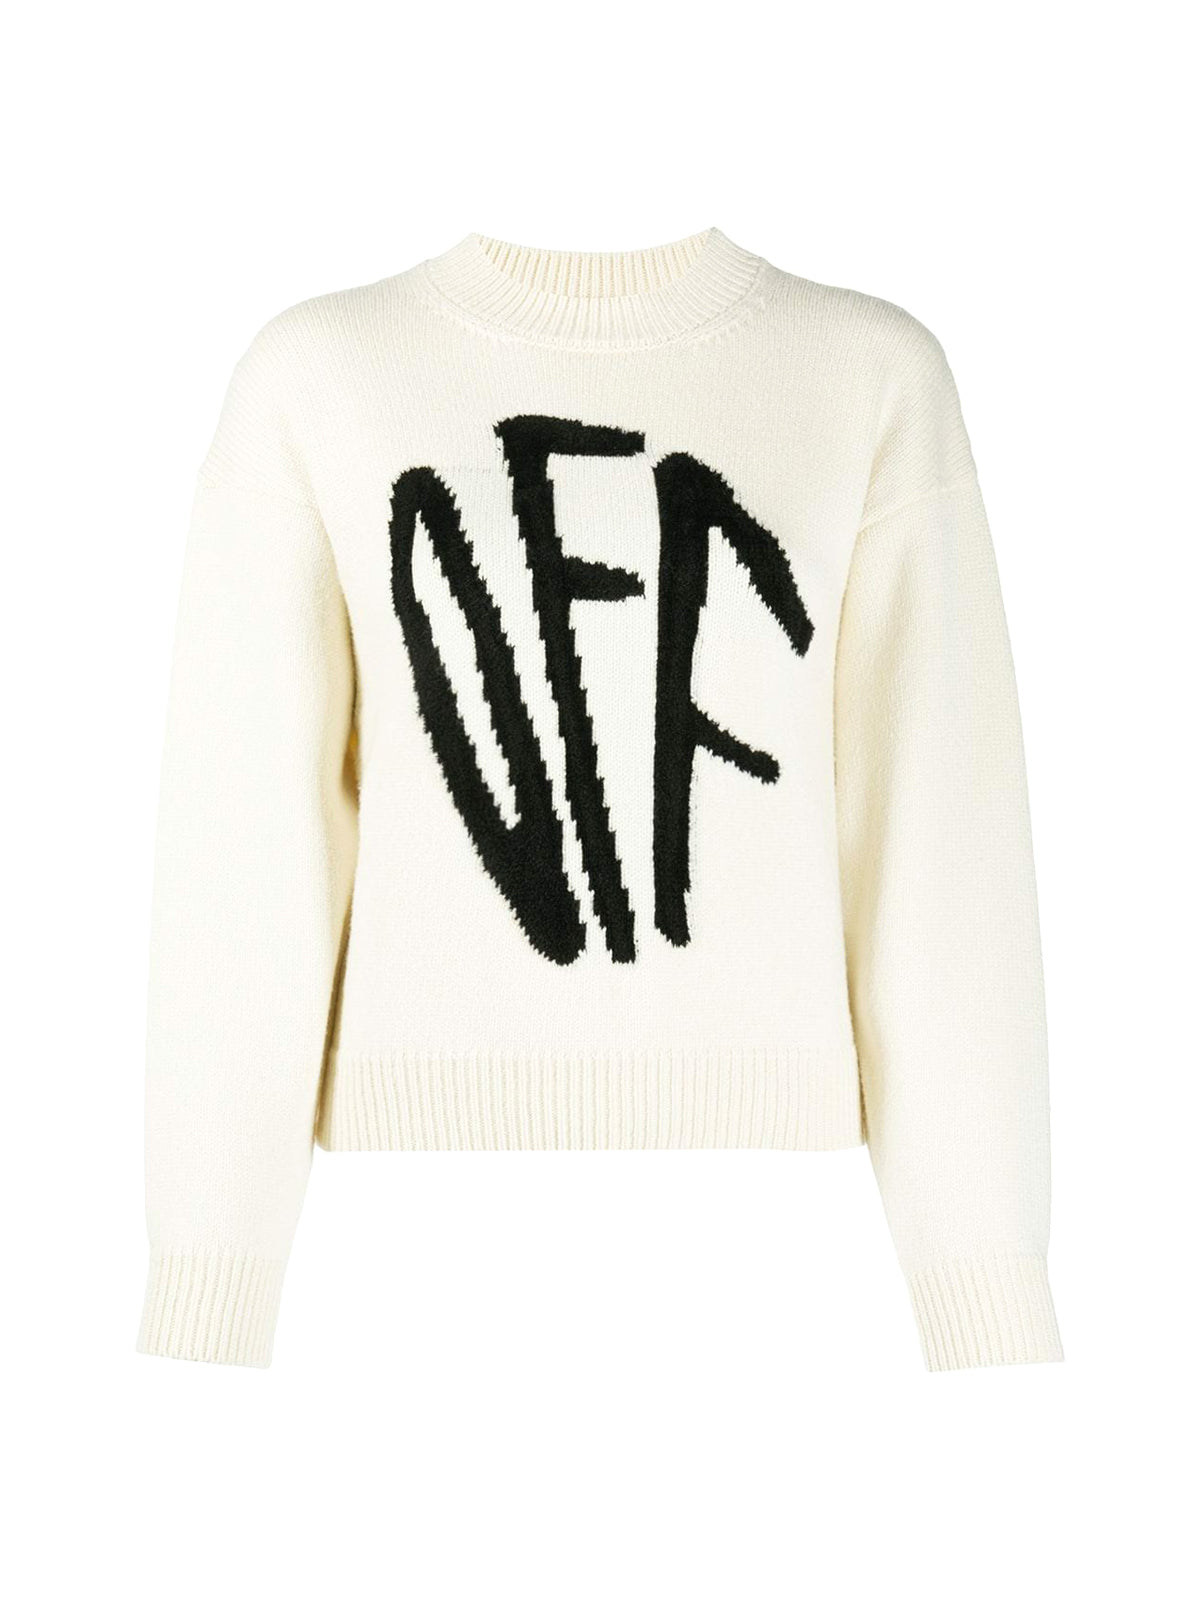 Graffiti crew-neck jumper